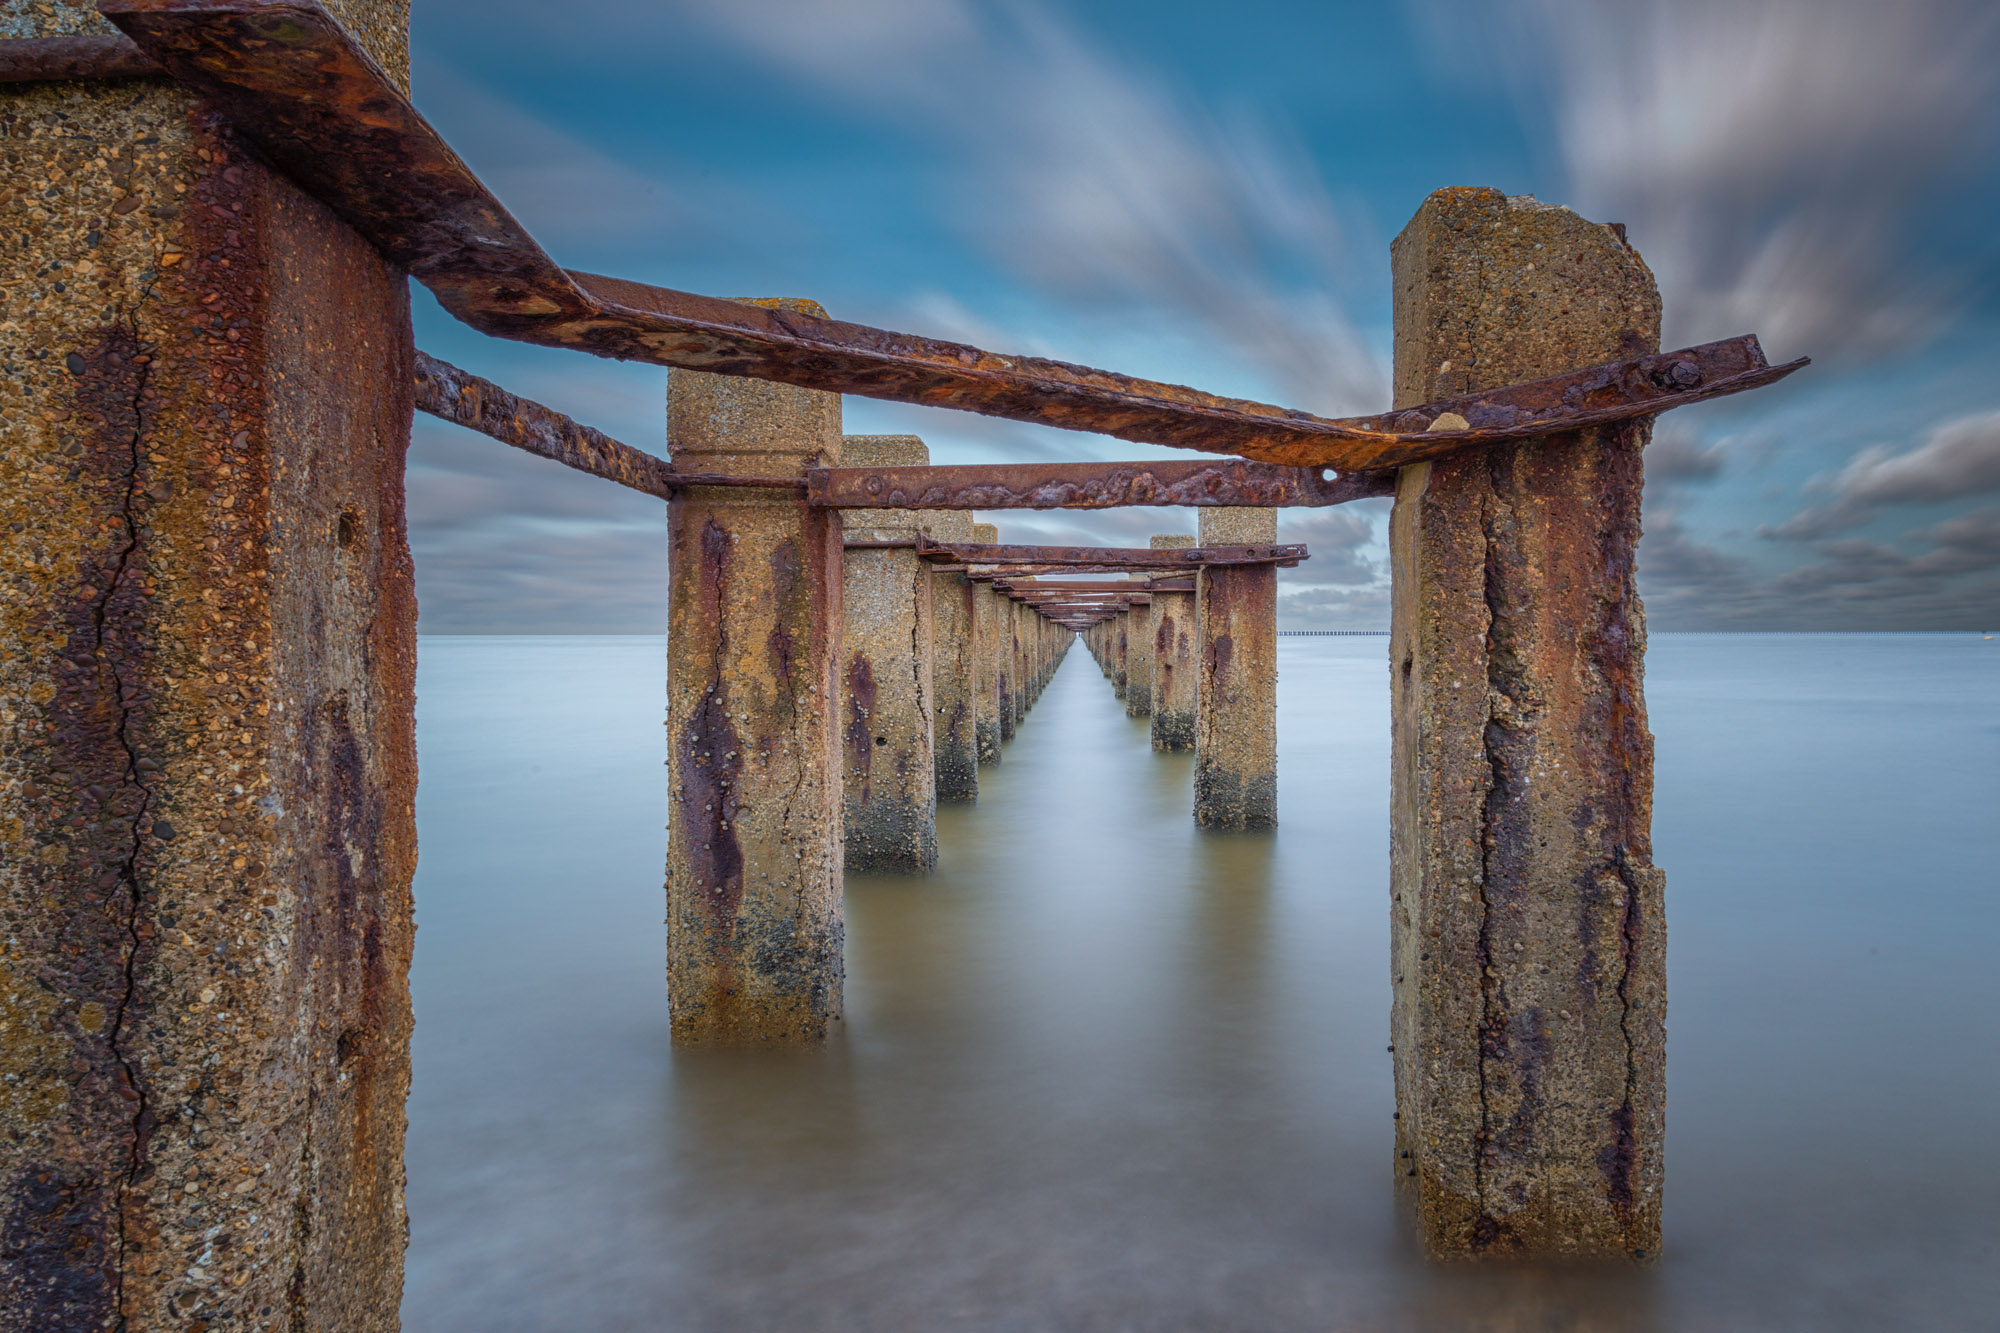 minimal long exposure photograph of an old derelict jetty structure in the ocean in the UK